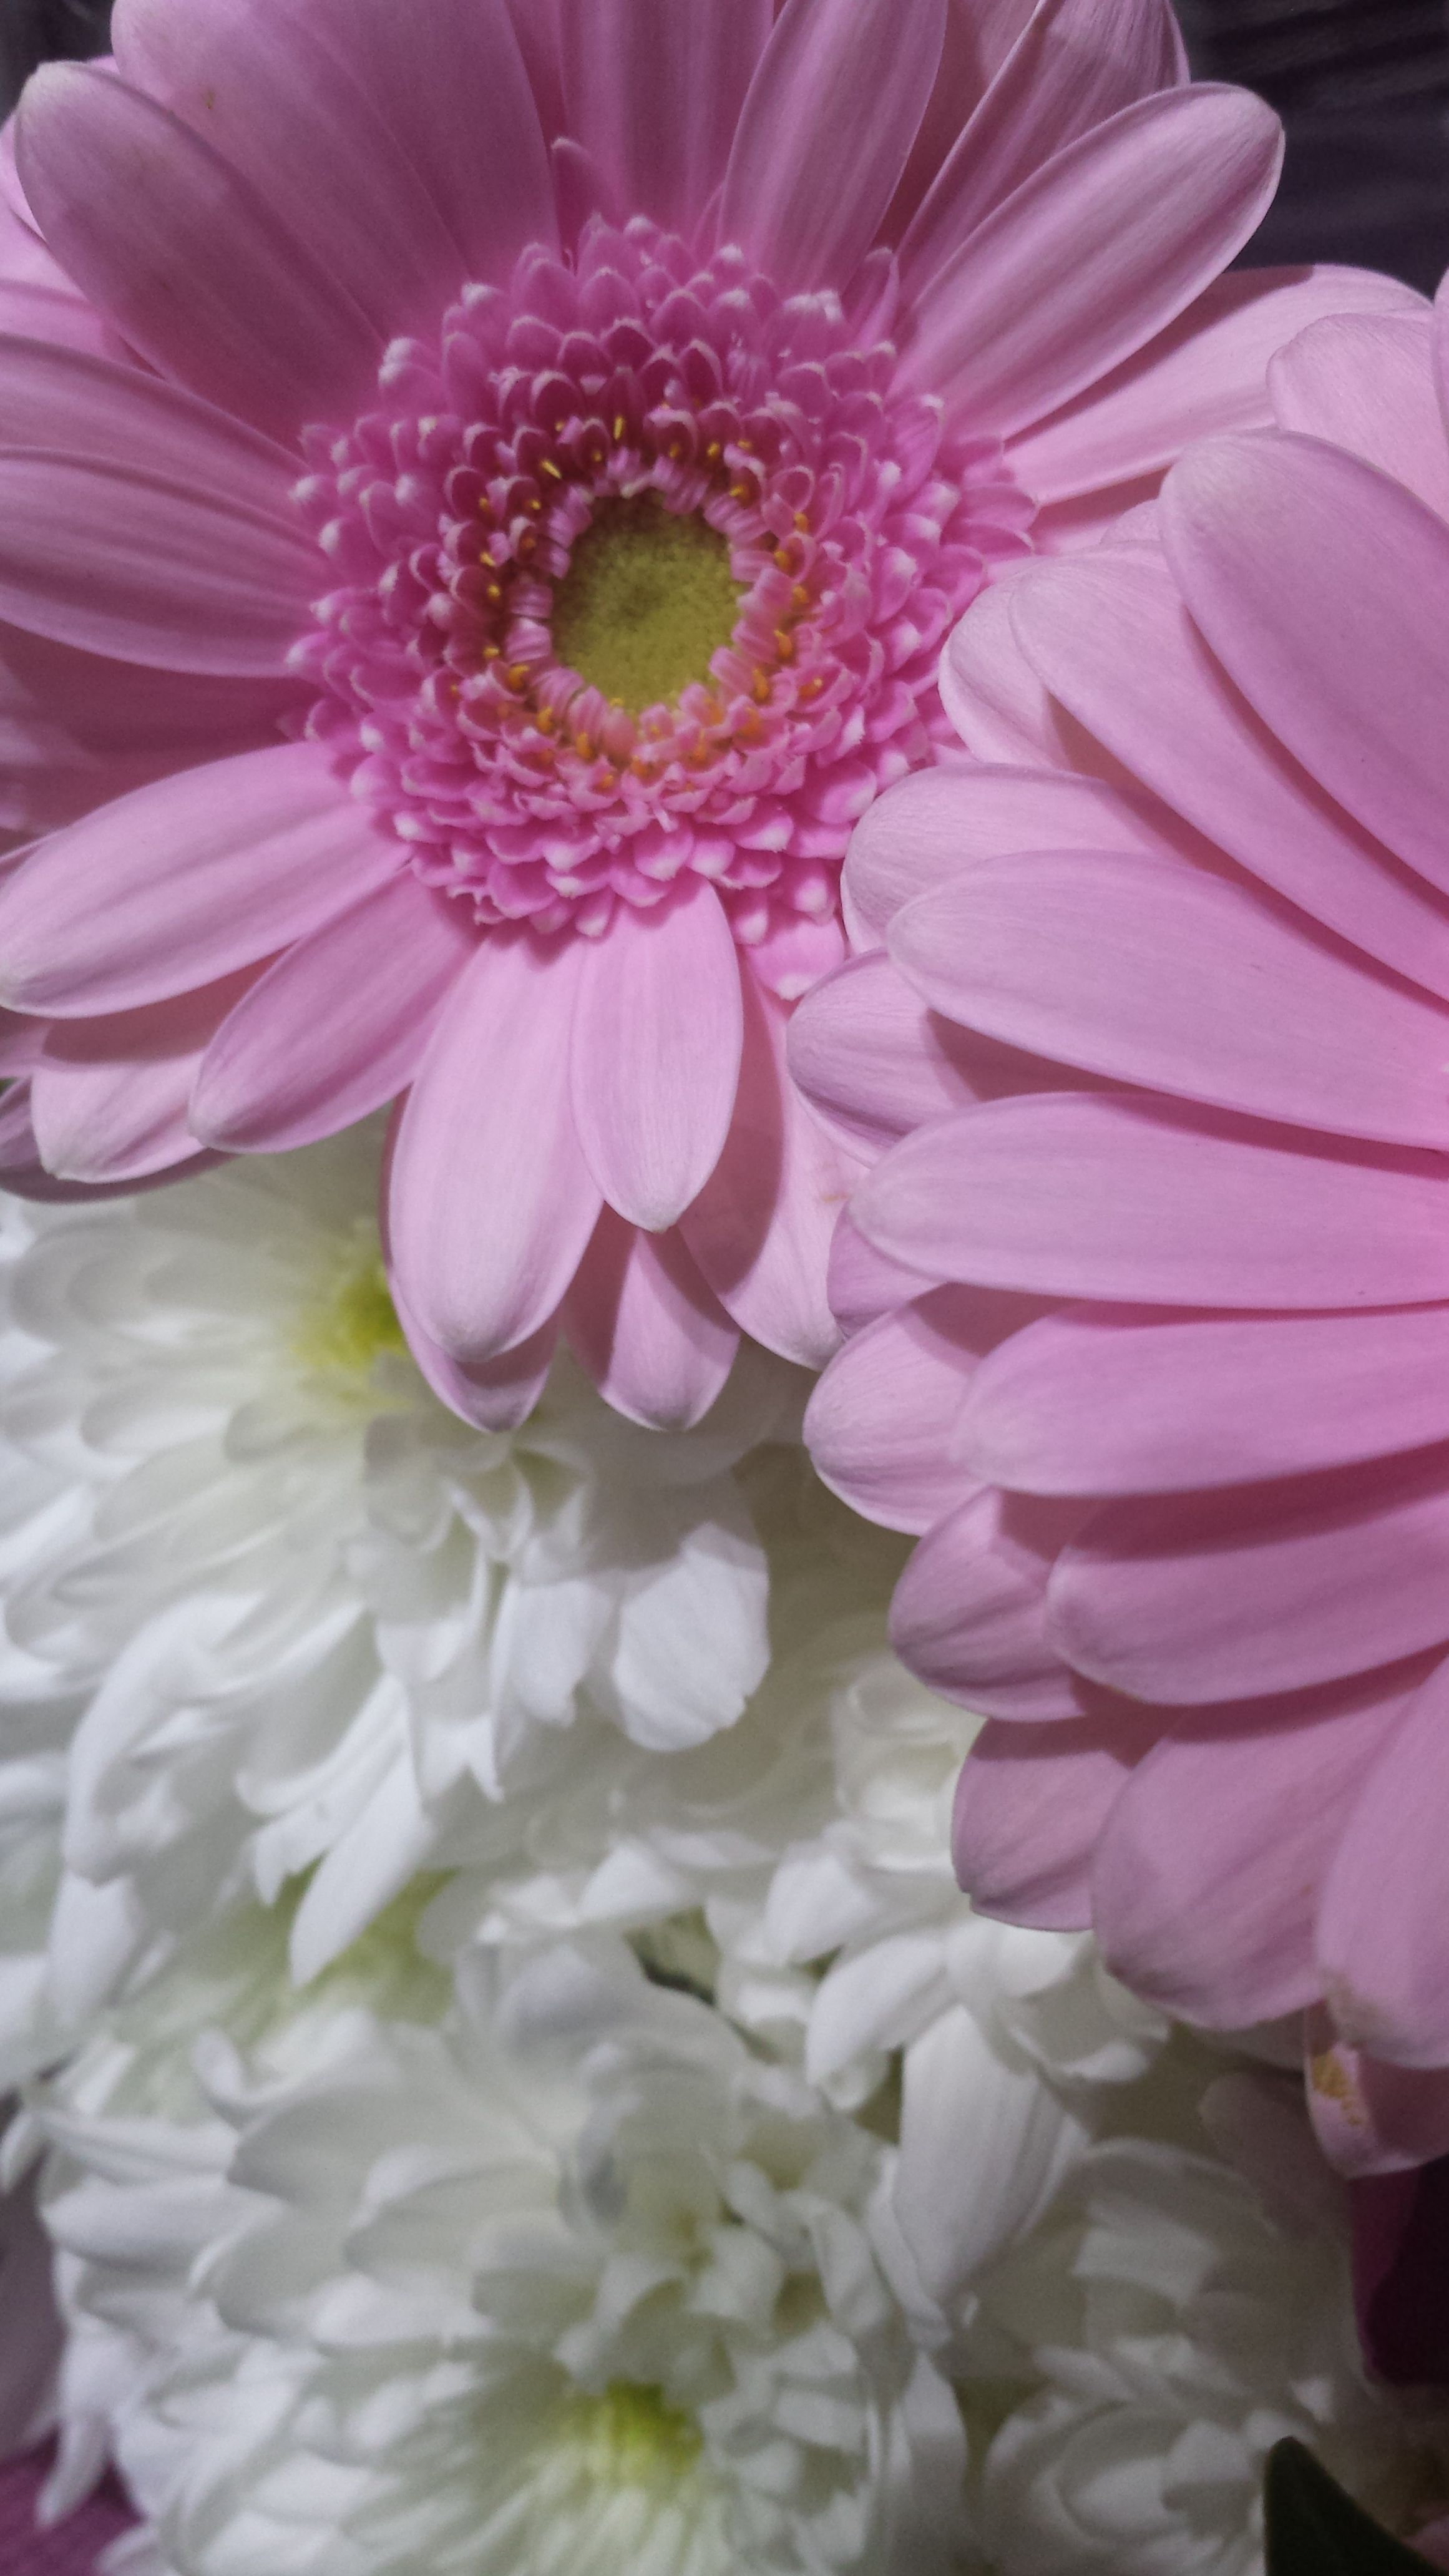 TriedForFree Tesco - Belle Bouquet MOTHERS DAY | Tesco products ...